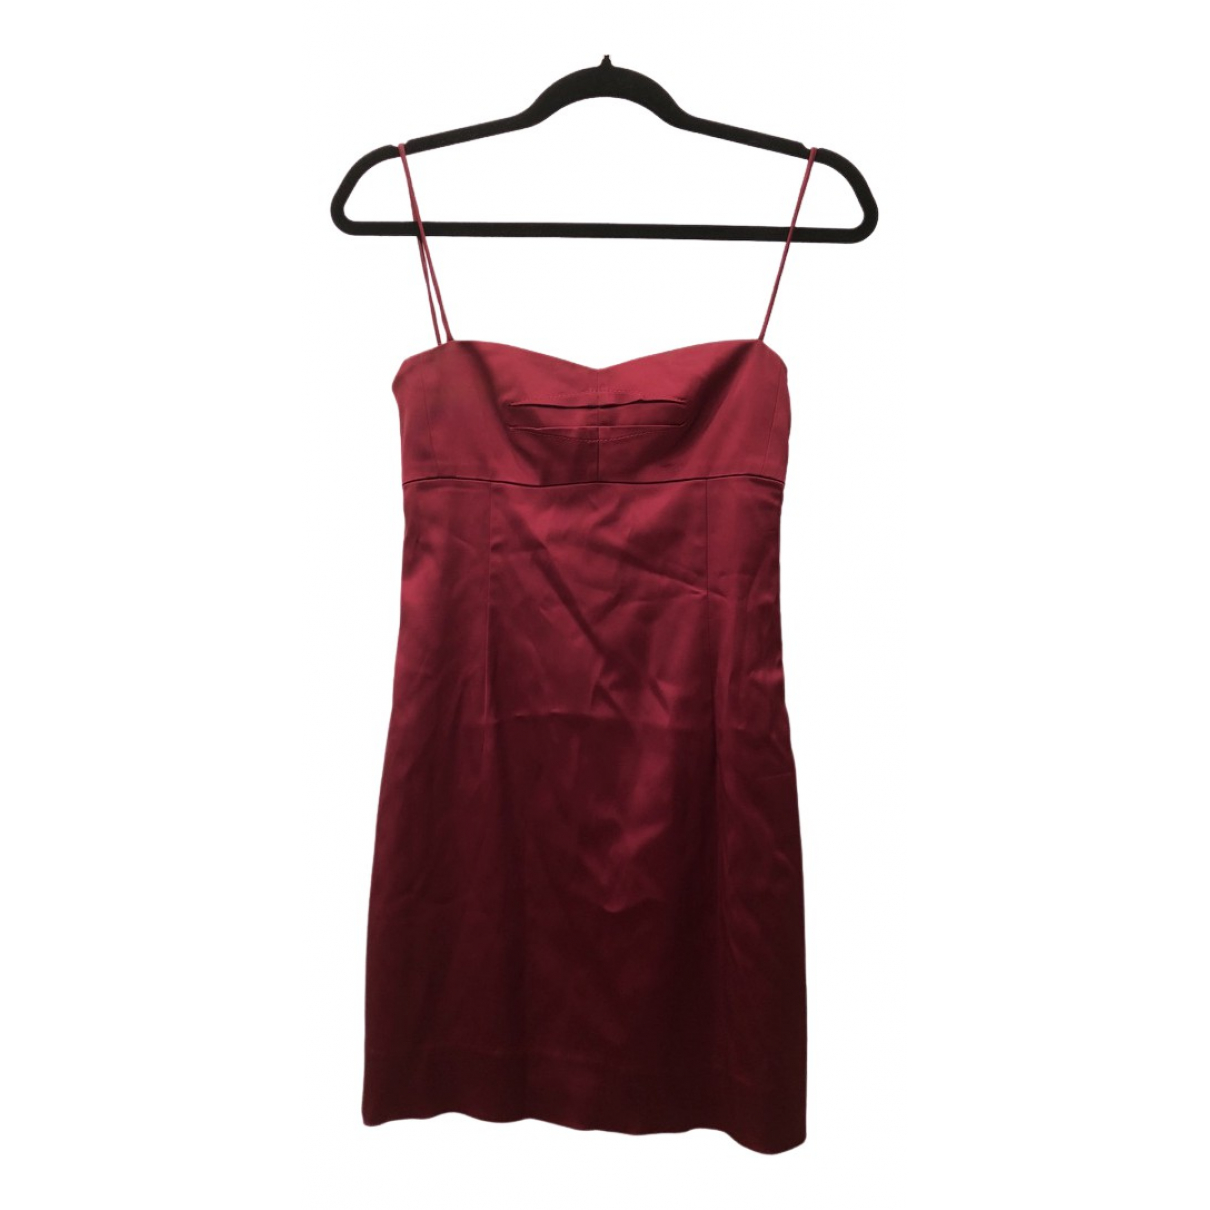 Hugo Boss \N Burgundy Silk dress for Women 8 UK